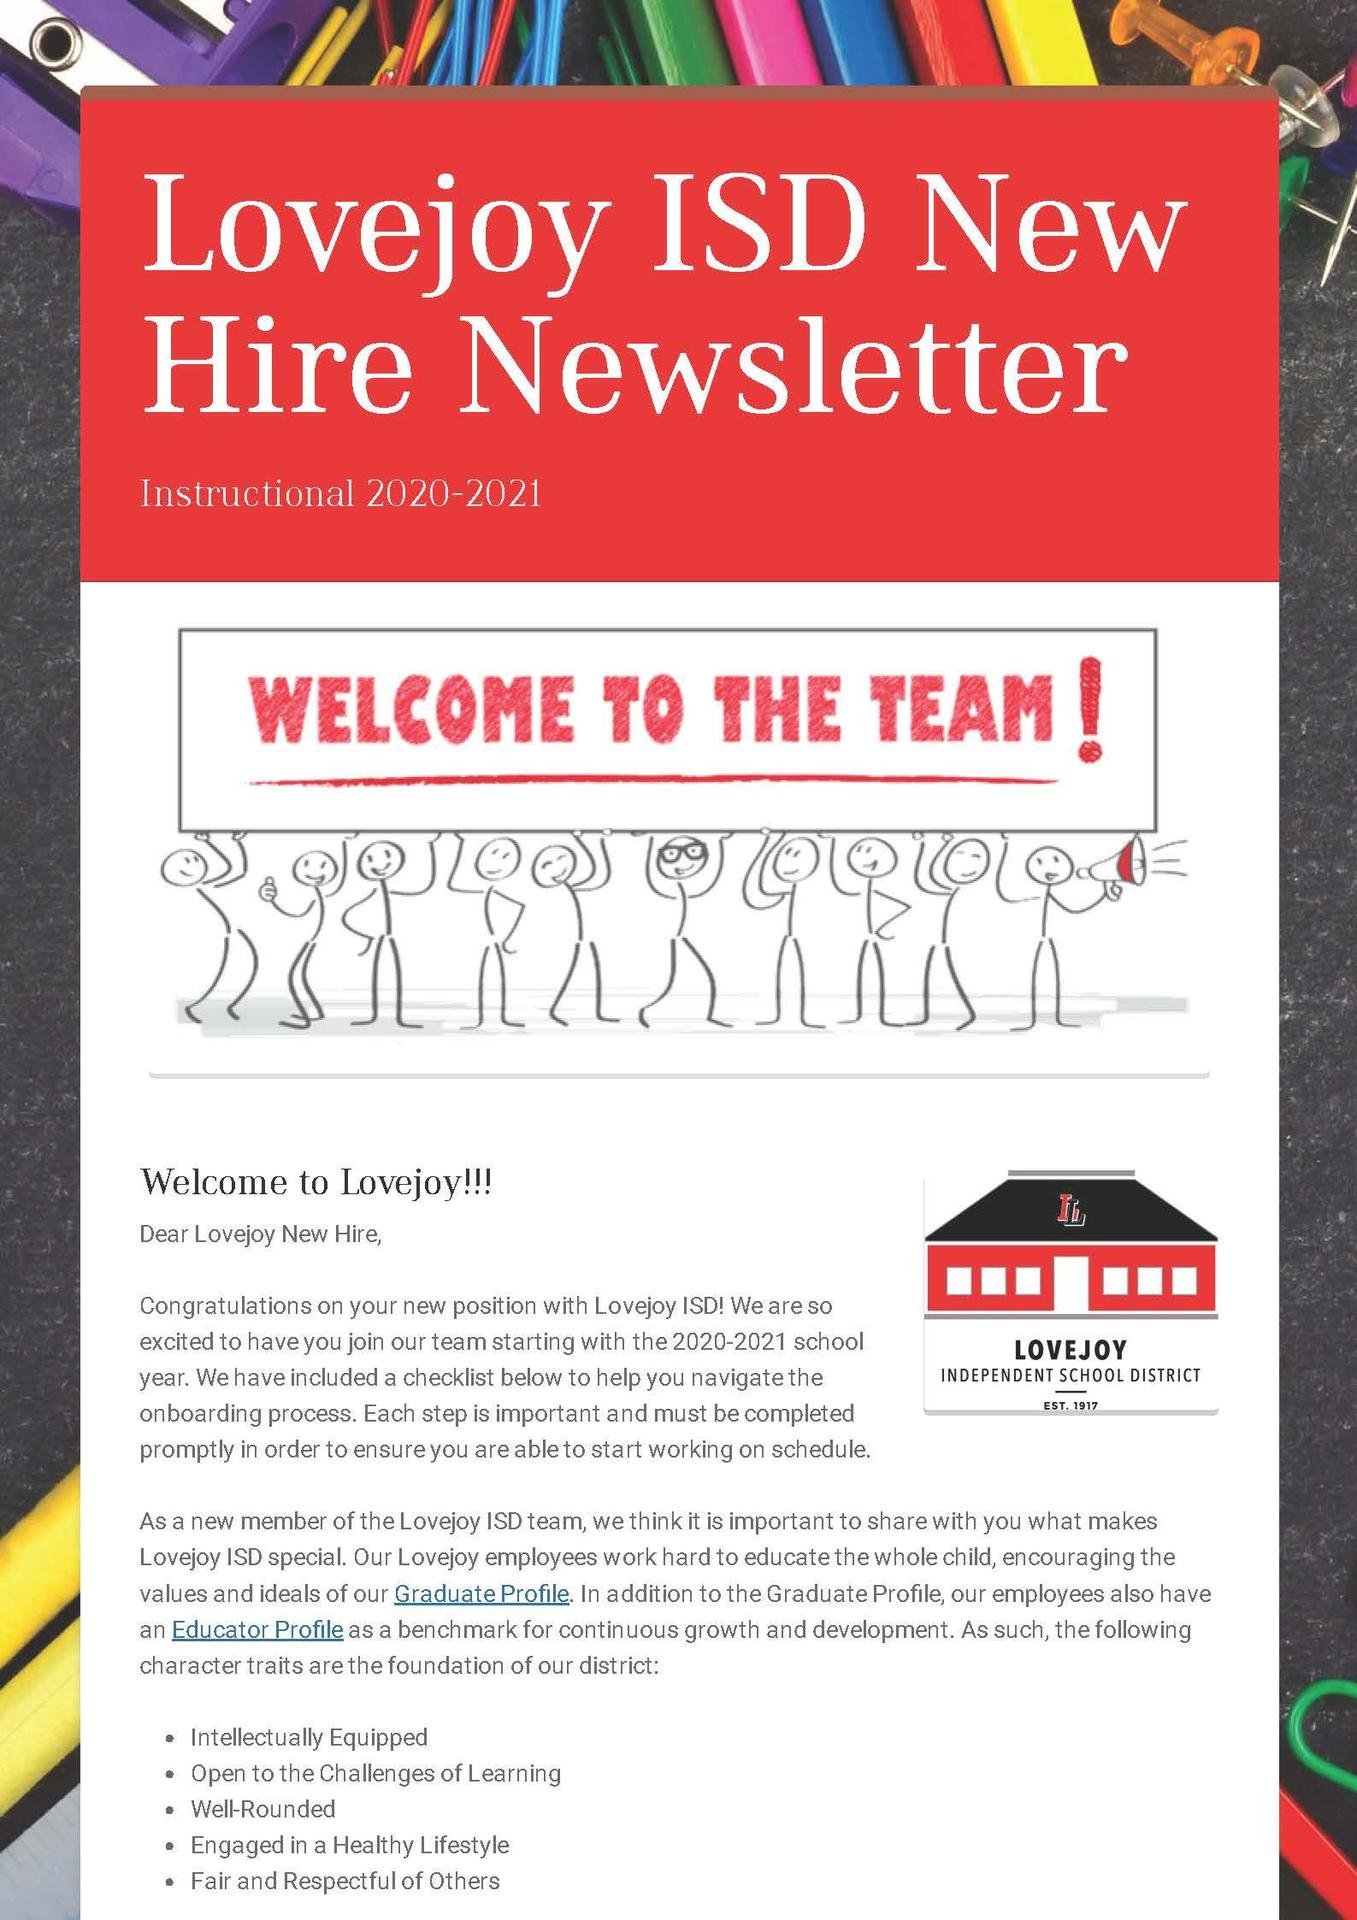 Instructional Newsletter